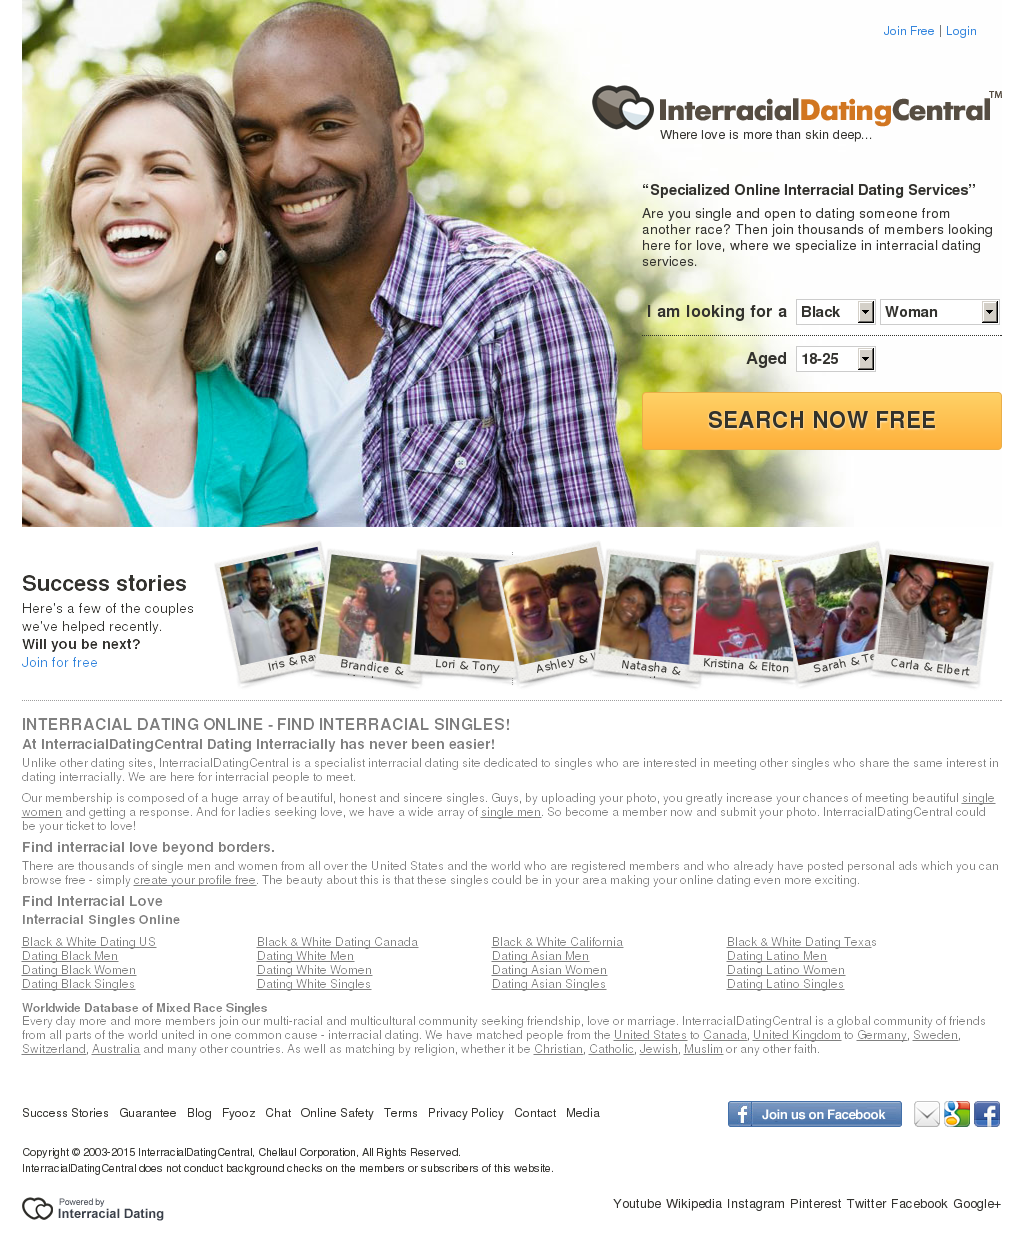 is interracial dating central a good site